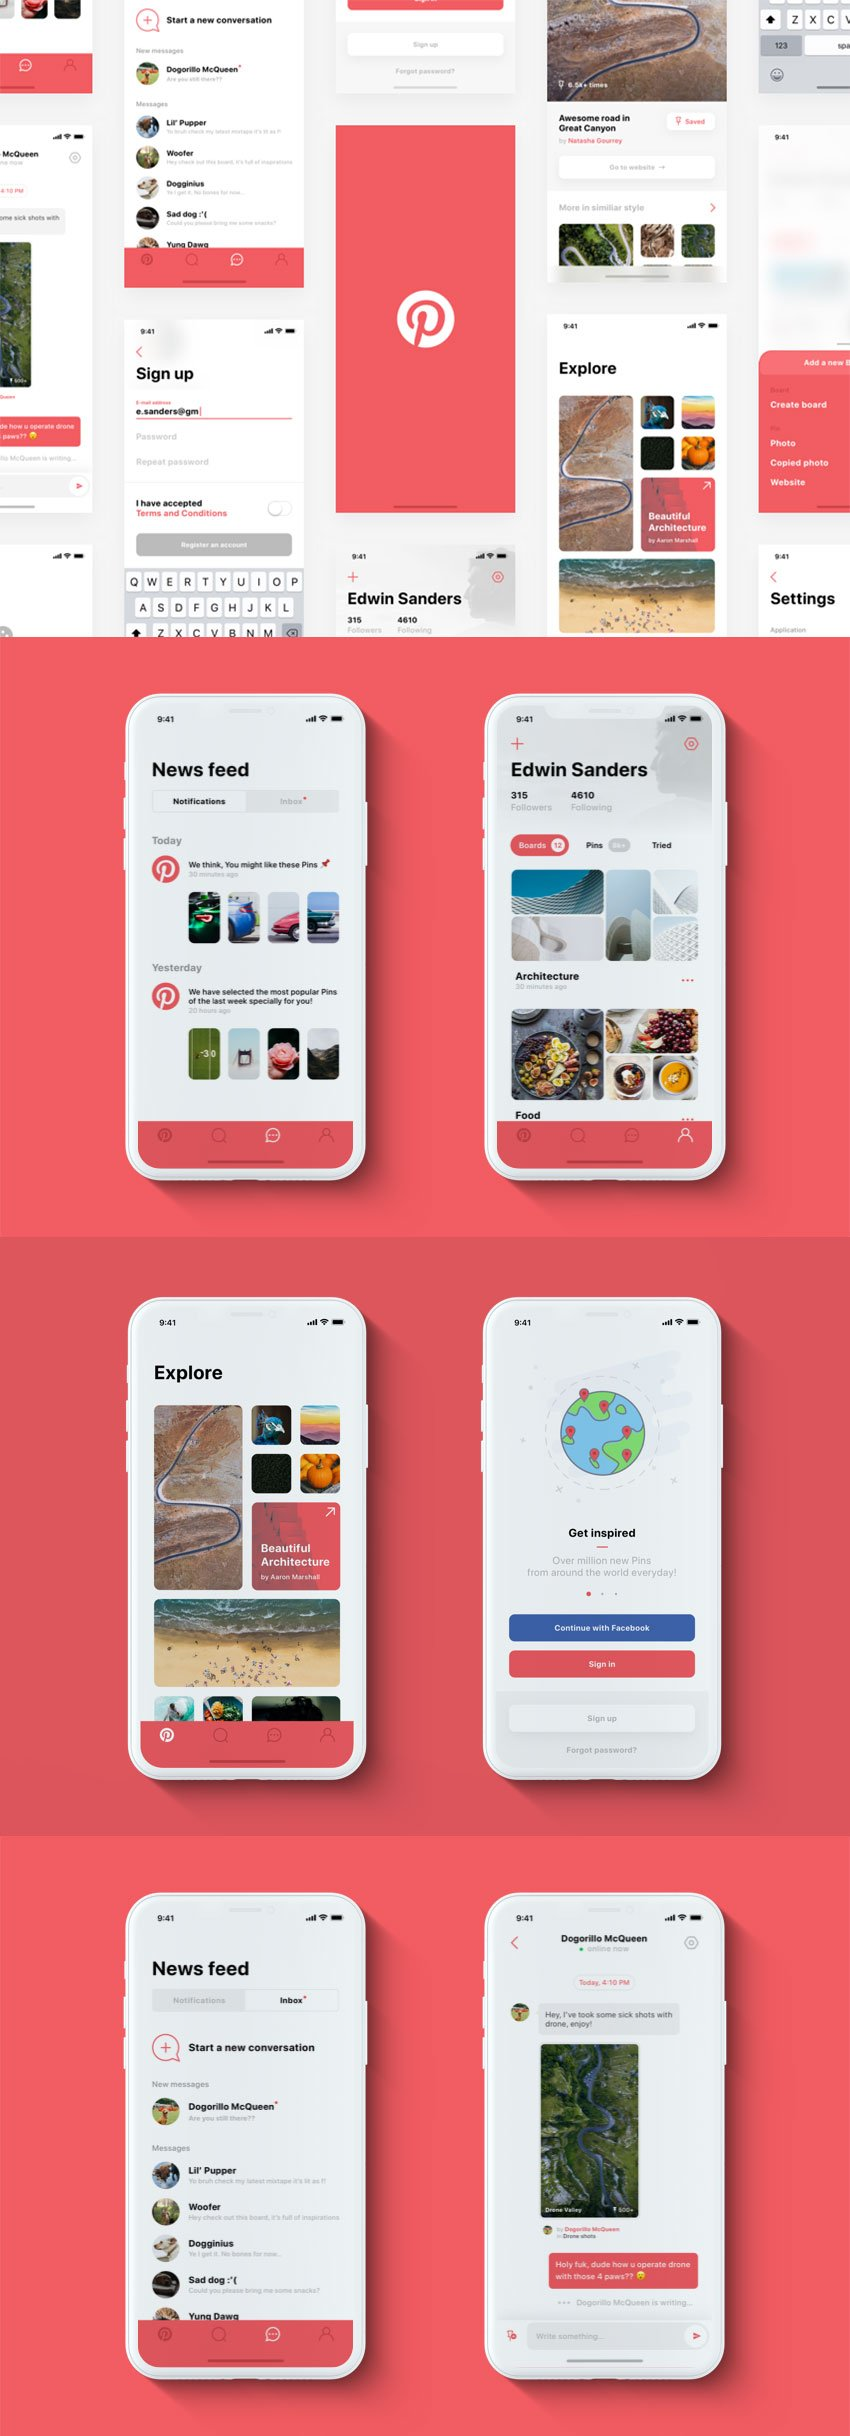 Pinterest App Design iPhone X Concept App Design for Sketch